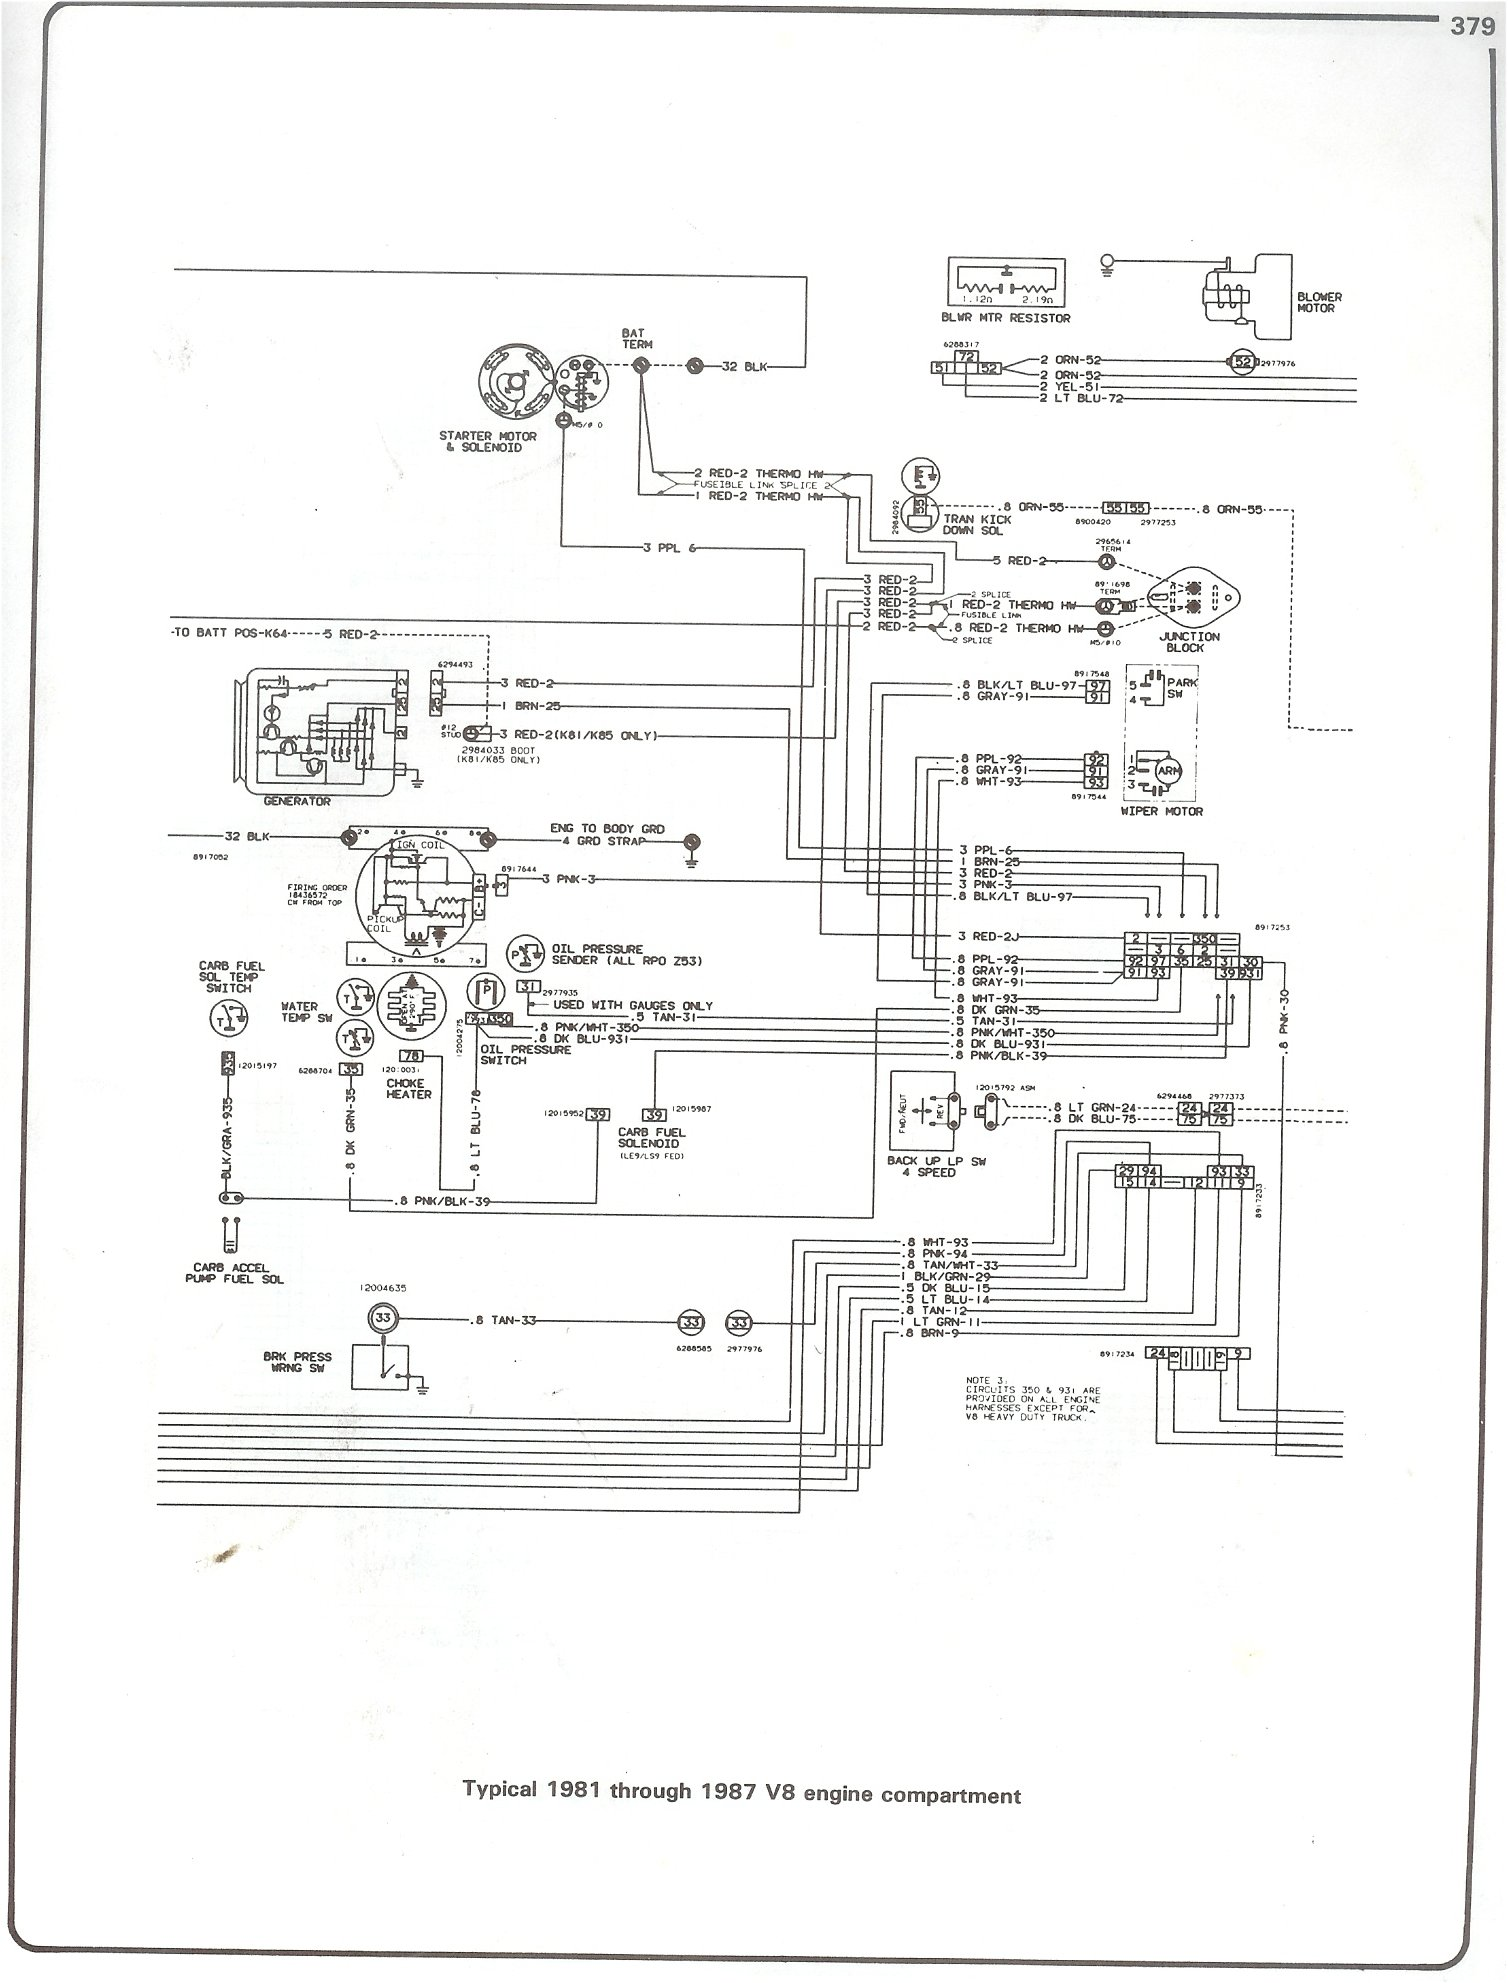 1974 Chevy C10 Wiring Schematics Opinions About Diagram 1972 Corvette Dash Powering My 84 The 1947 Present Chevrolet Gmc Truck Message Board Network